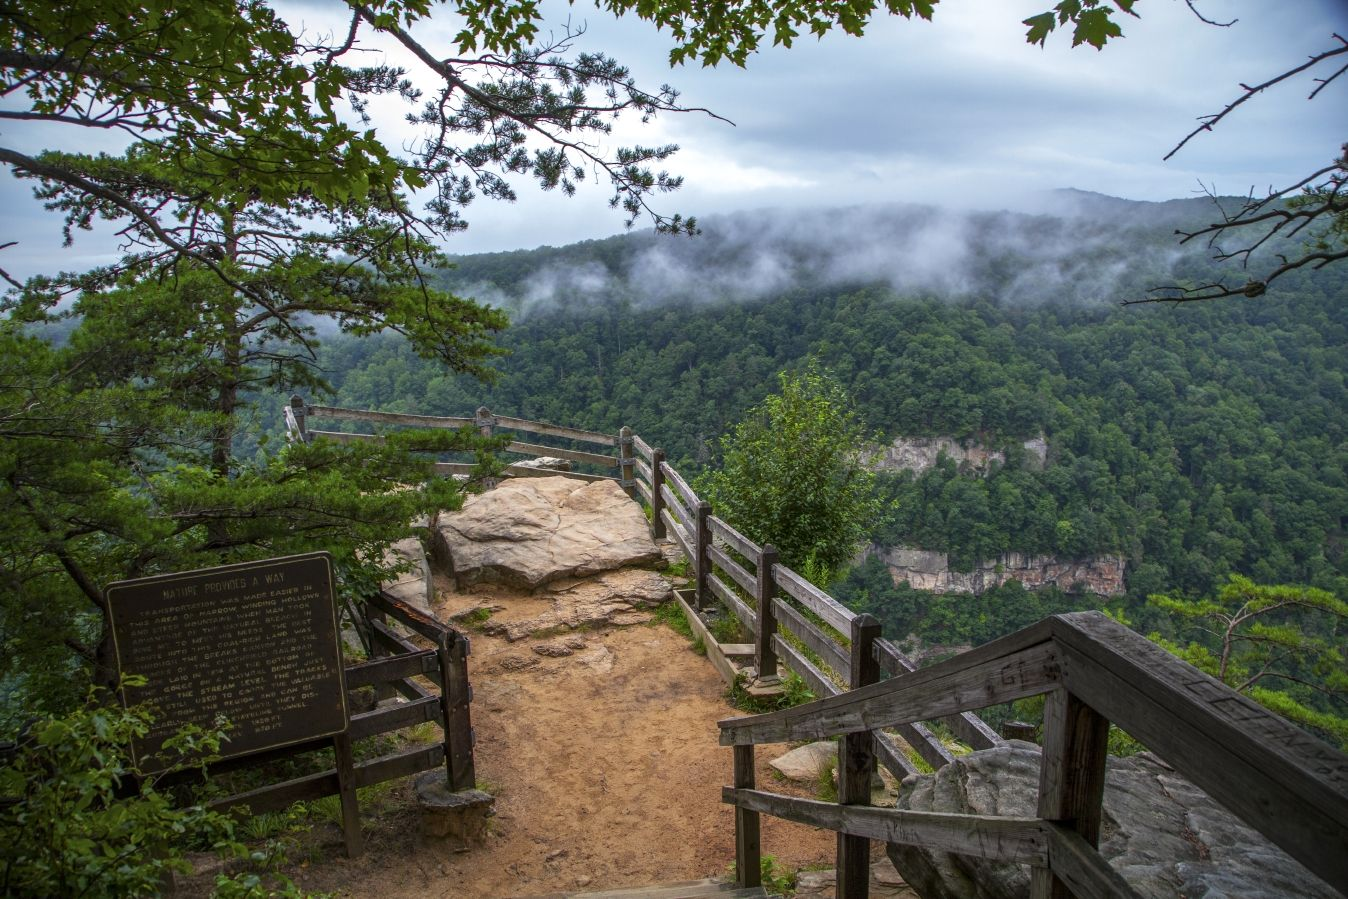 Nine Scenic Rentals for Your Virginia Mountain Getaway